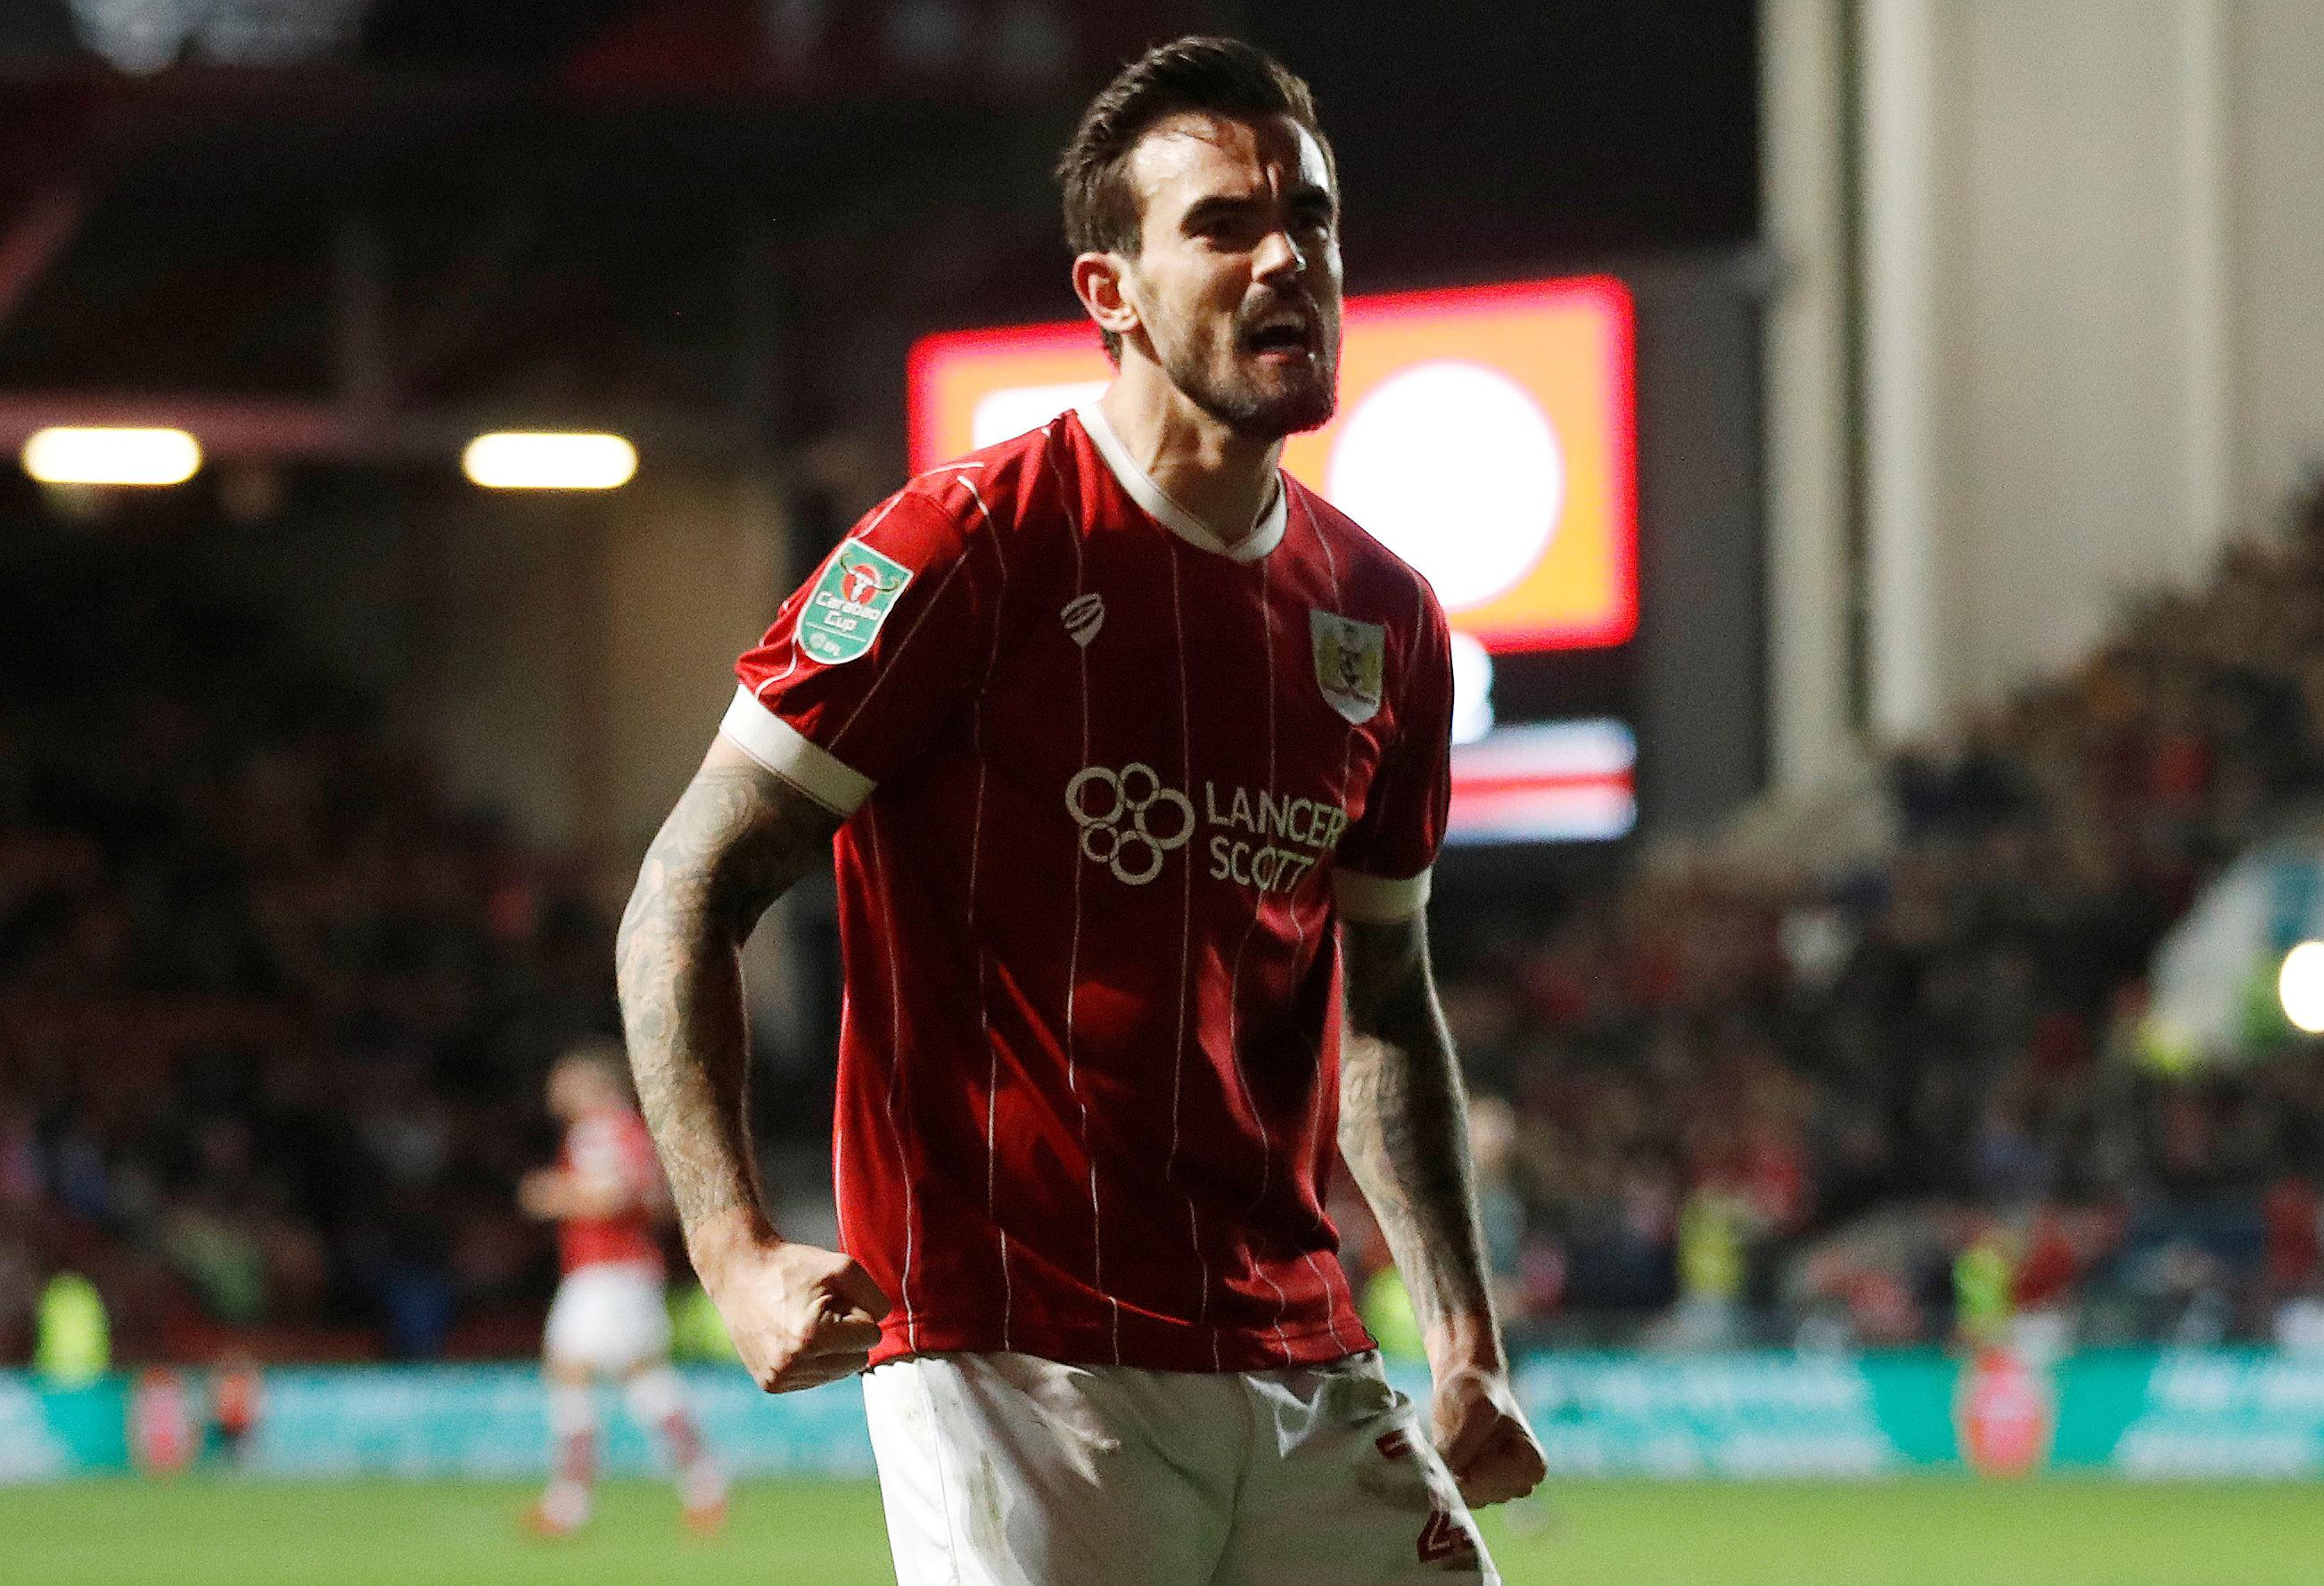 Bristol City made a valiant late effort to send the game to extra time